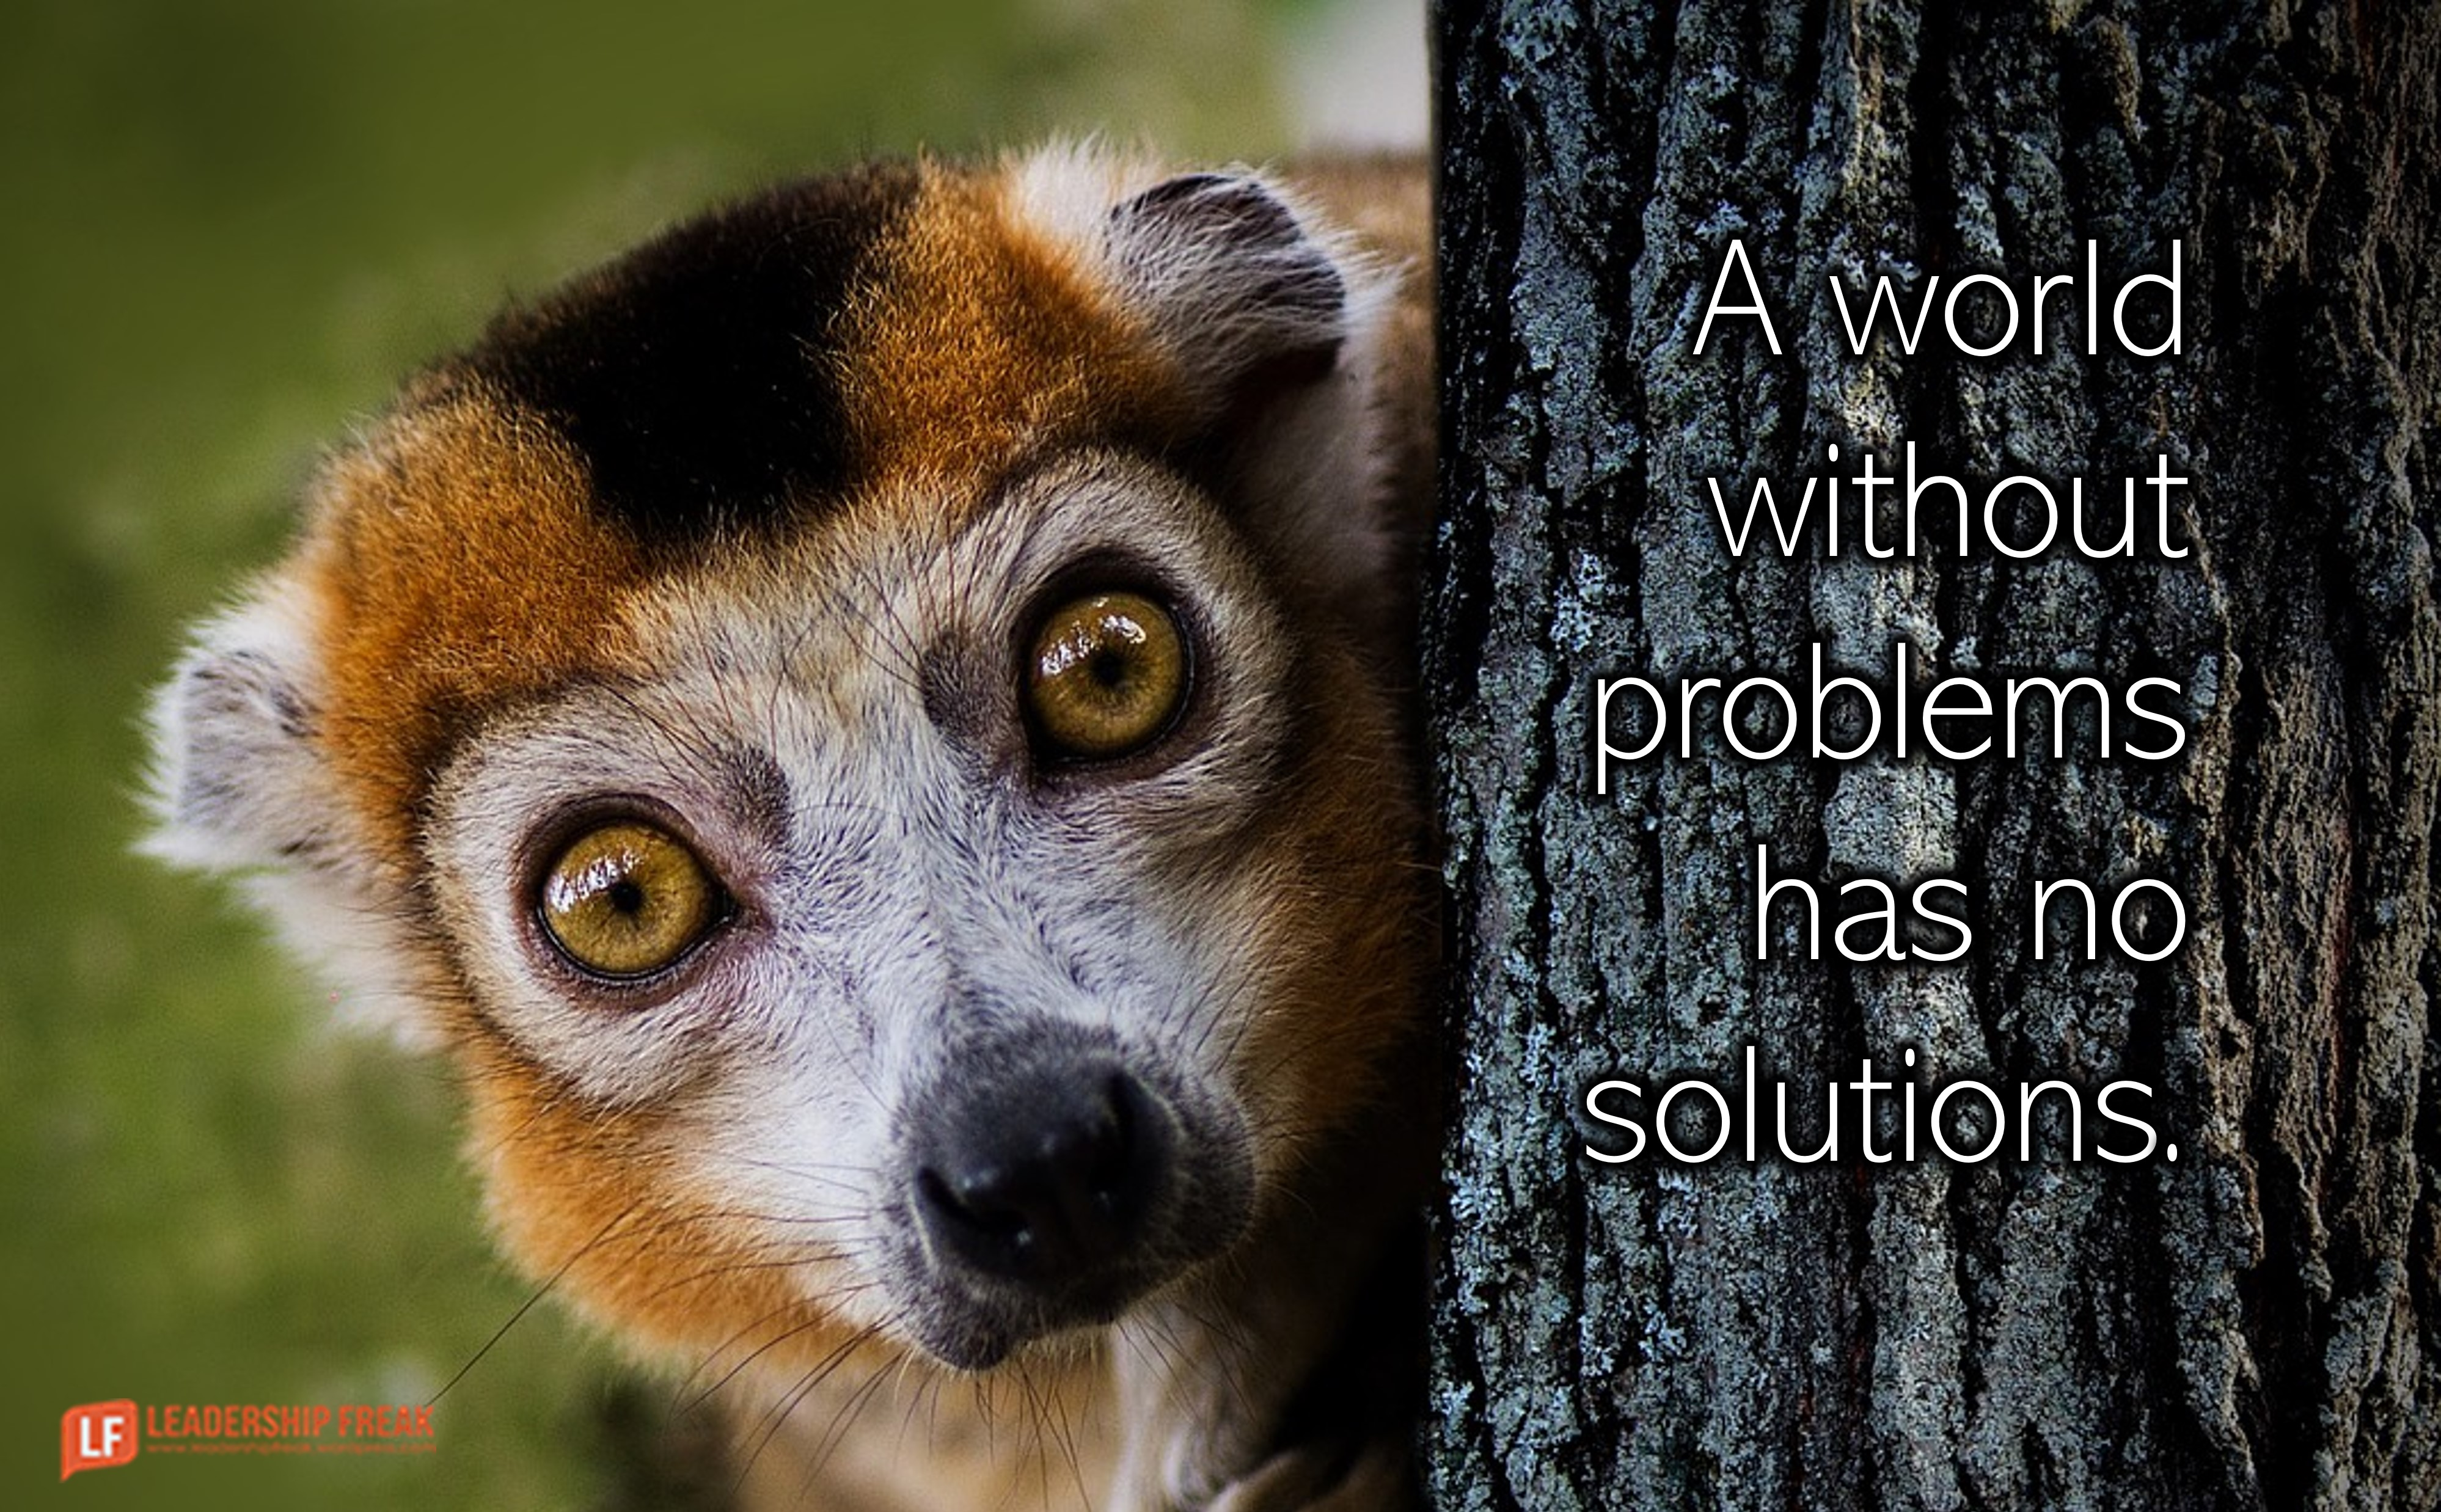 Wide eyed animal.  A world without problems has no solutions.